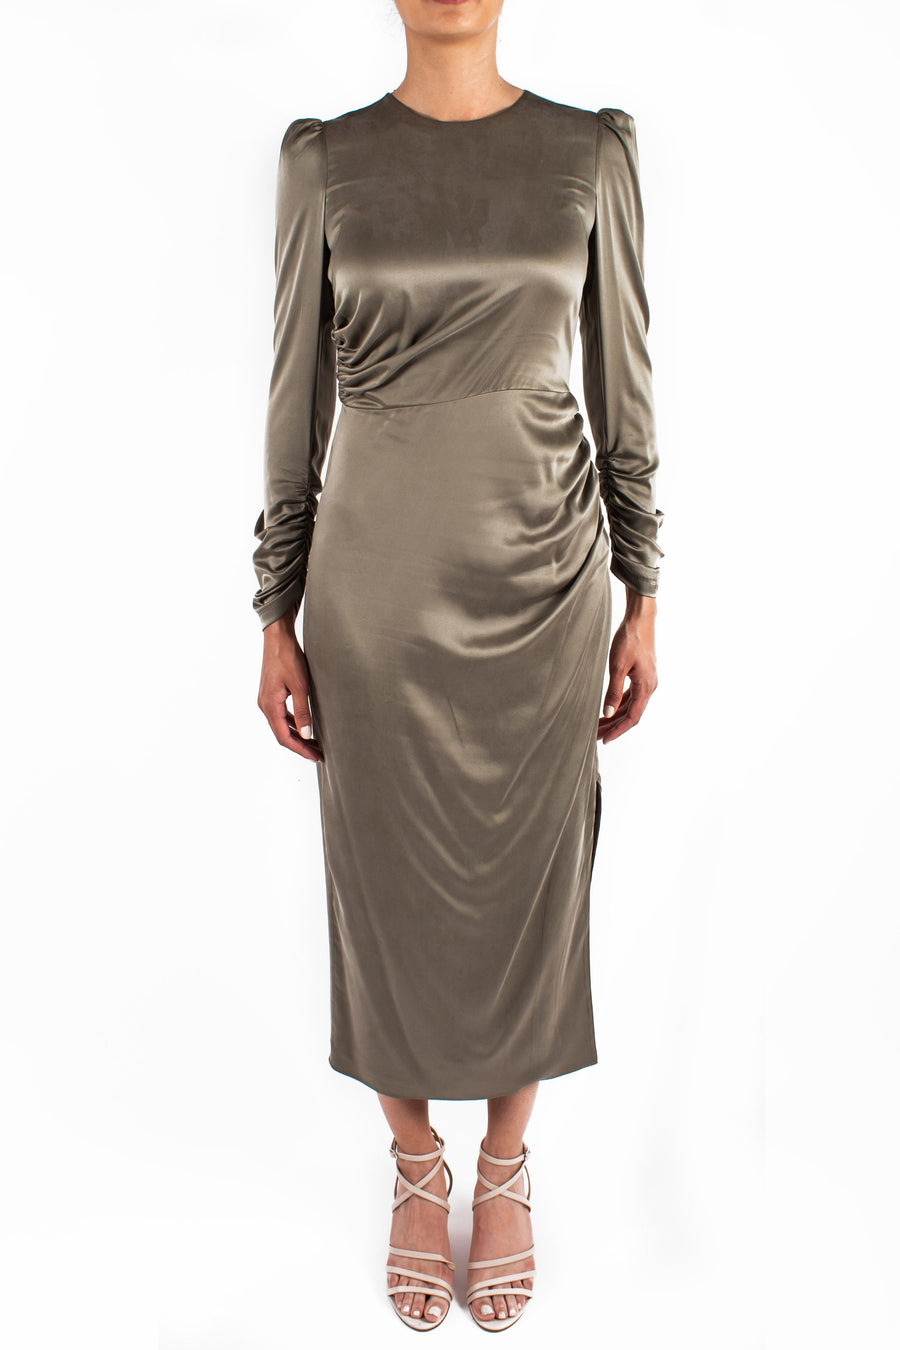 Draped Dress Olive Front